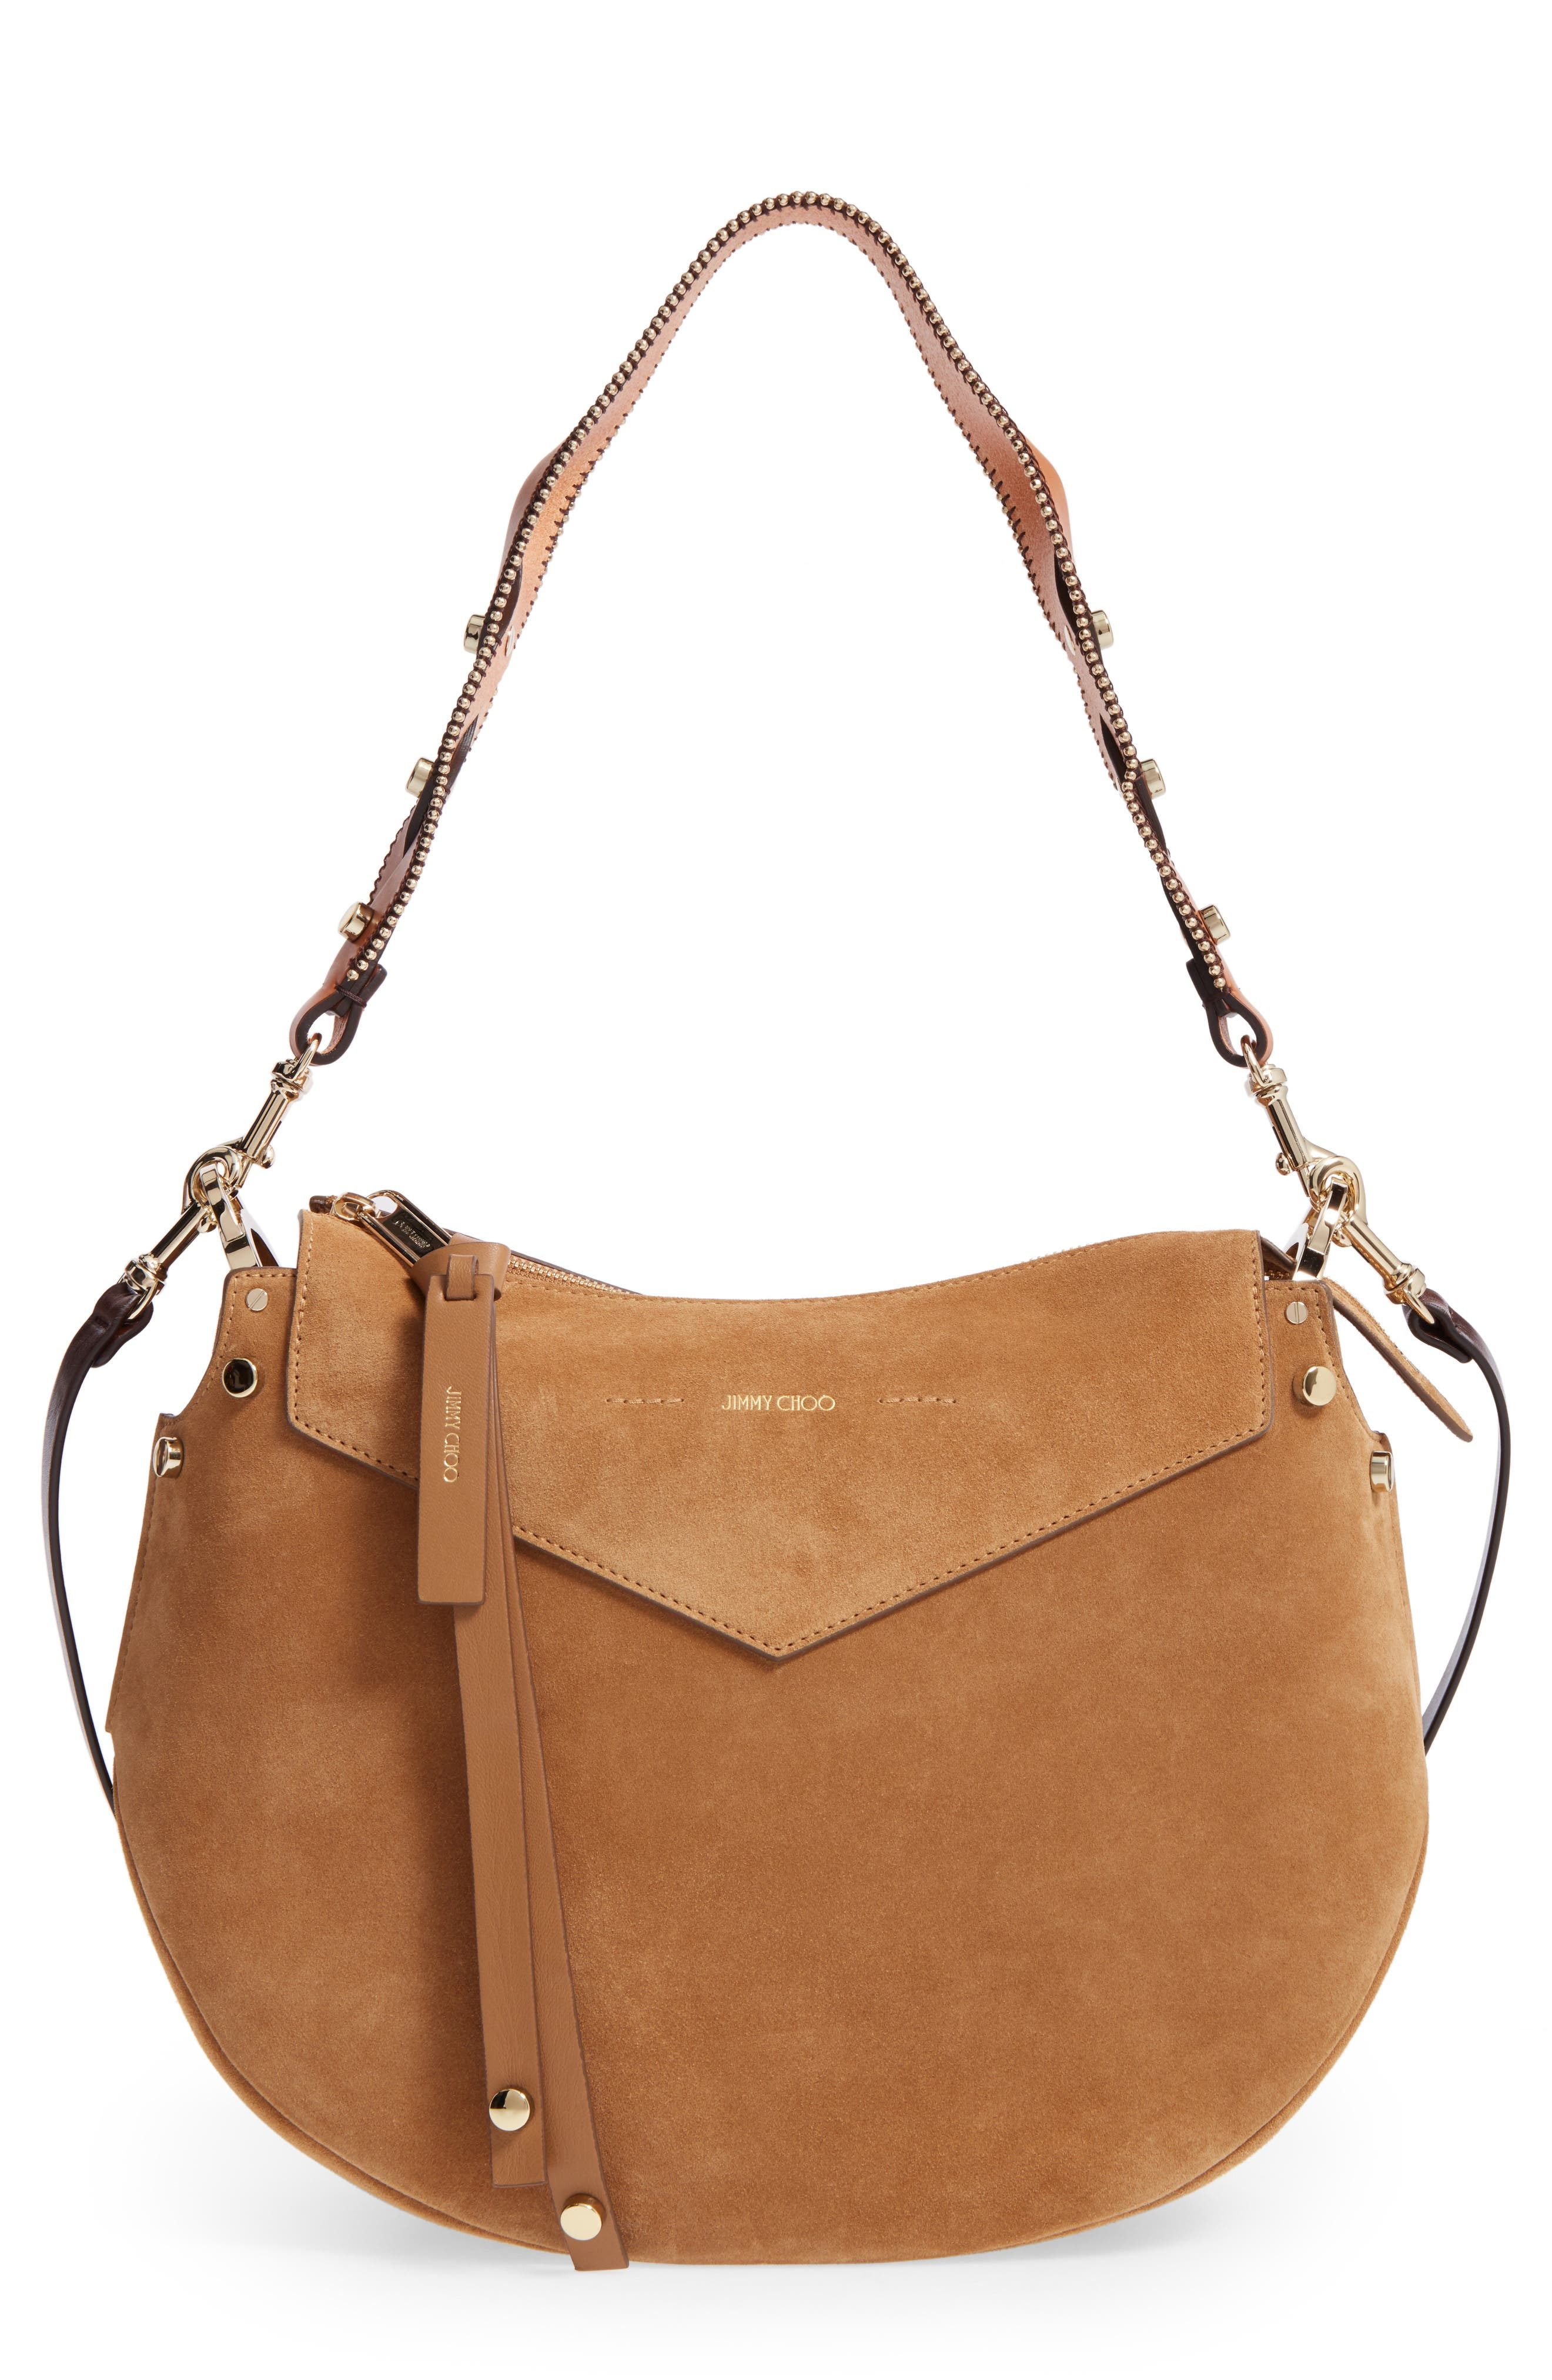 Alternate Image 1 Selected - Jimmy Choo Artie Suede Hobo Bag